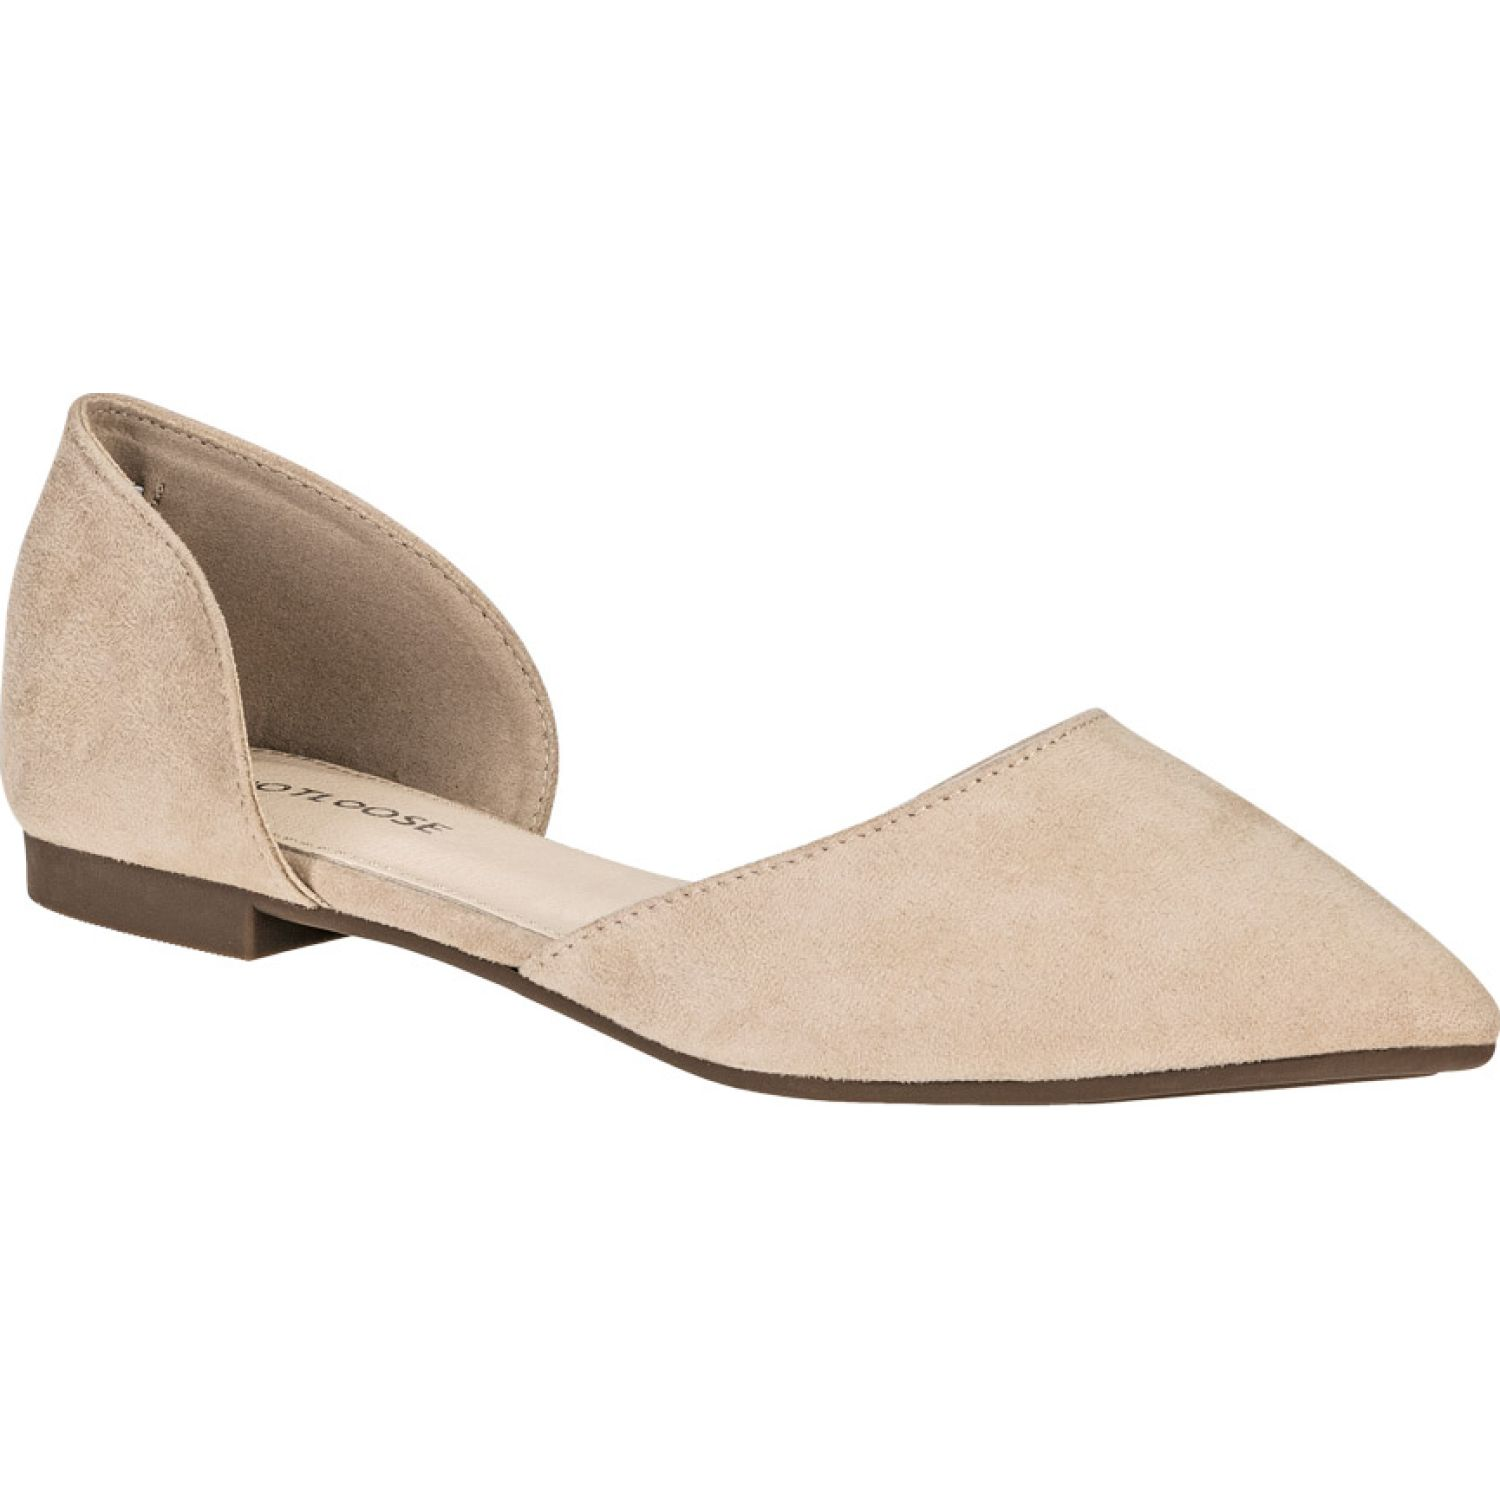 FOOTLOOSE Fch-Nn16v20 BEIGE Flats